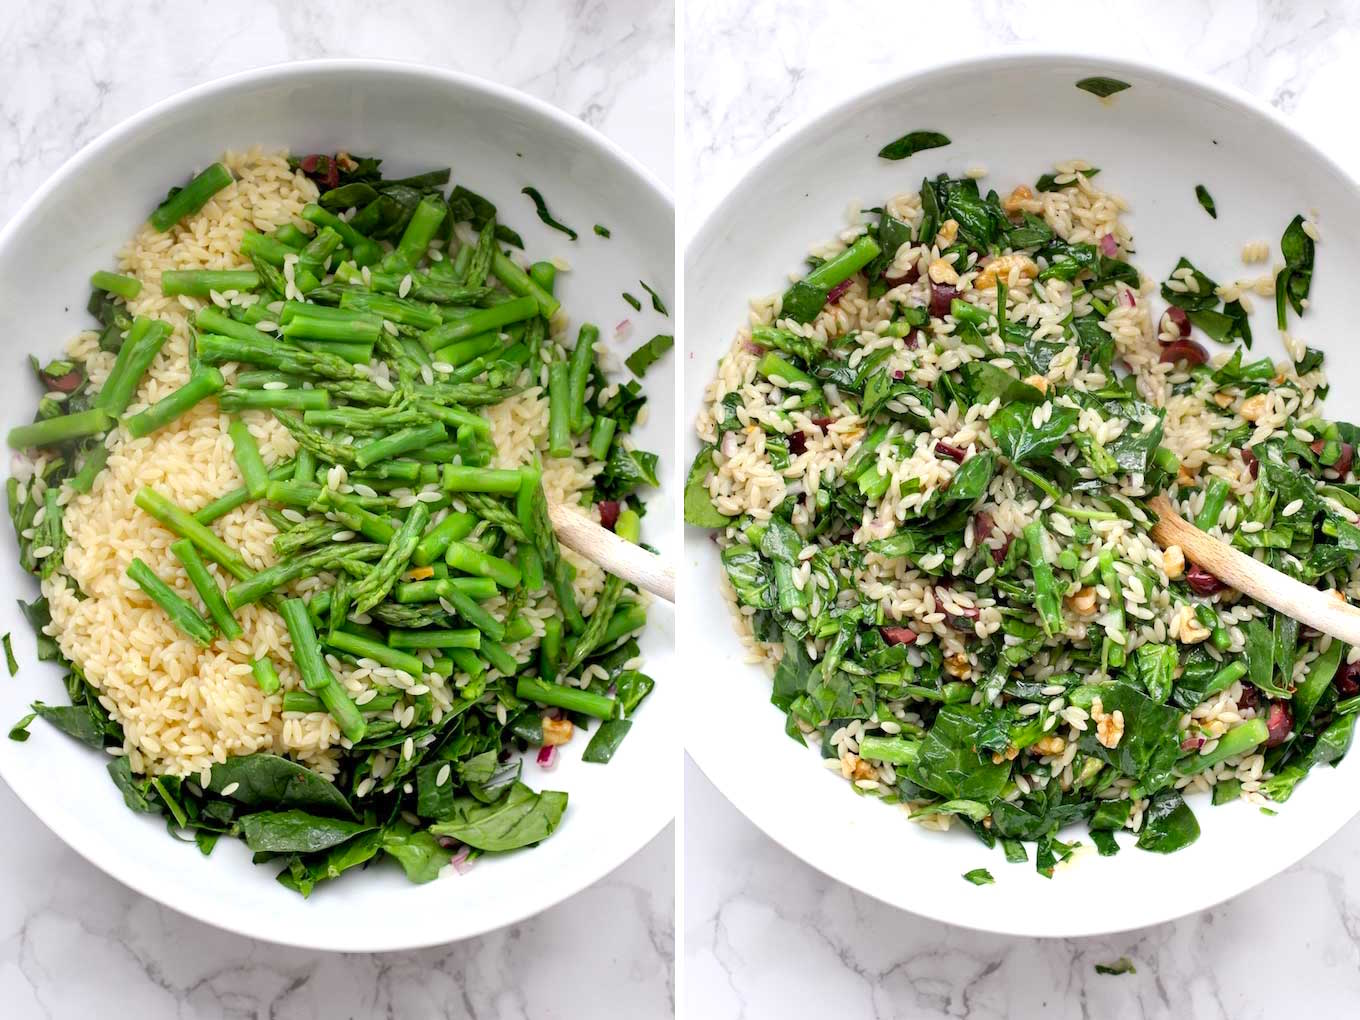 Side by side photos of orzo, asparagus and spinach mixture in a white bowl with a wood spoon.